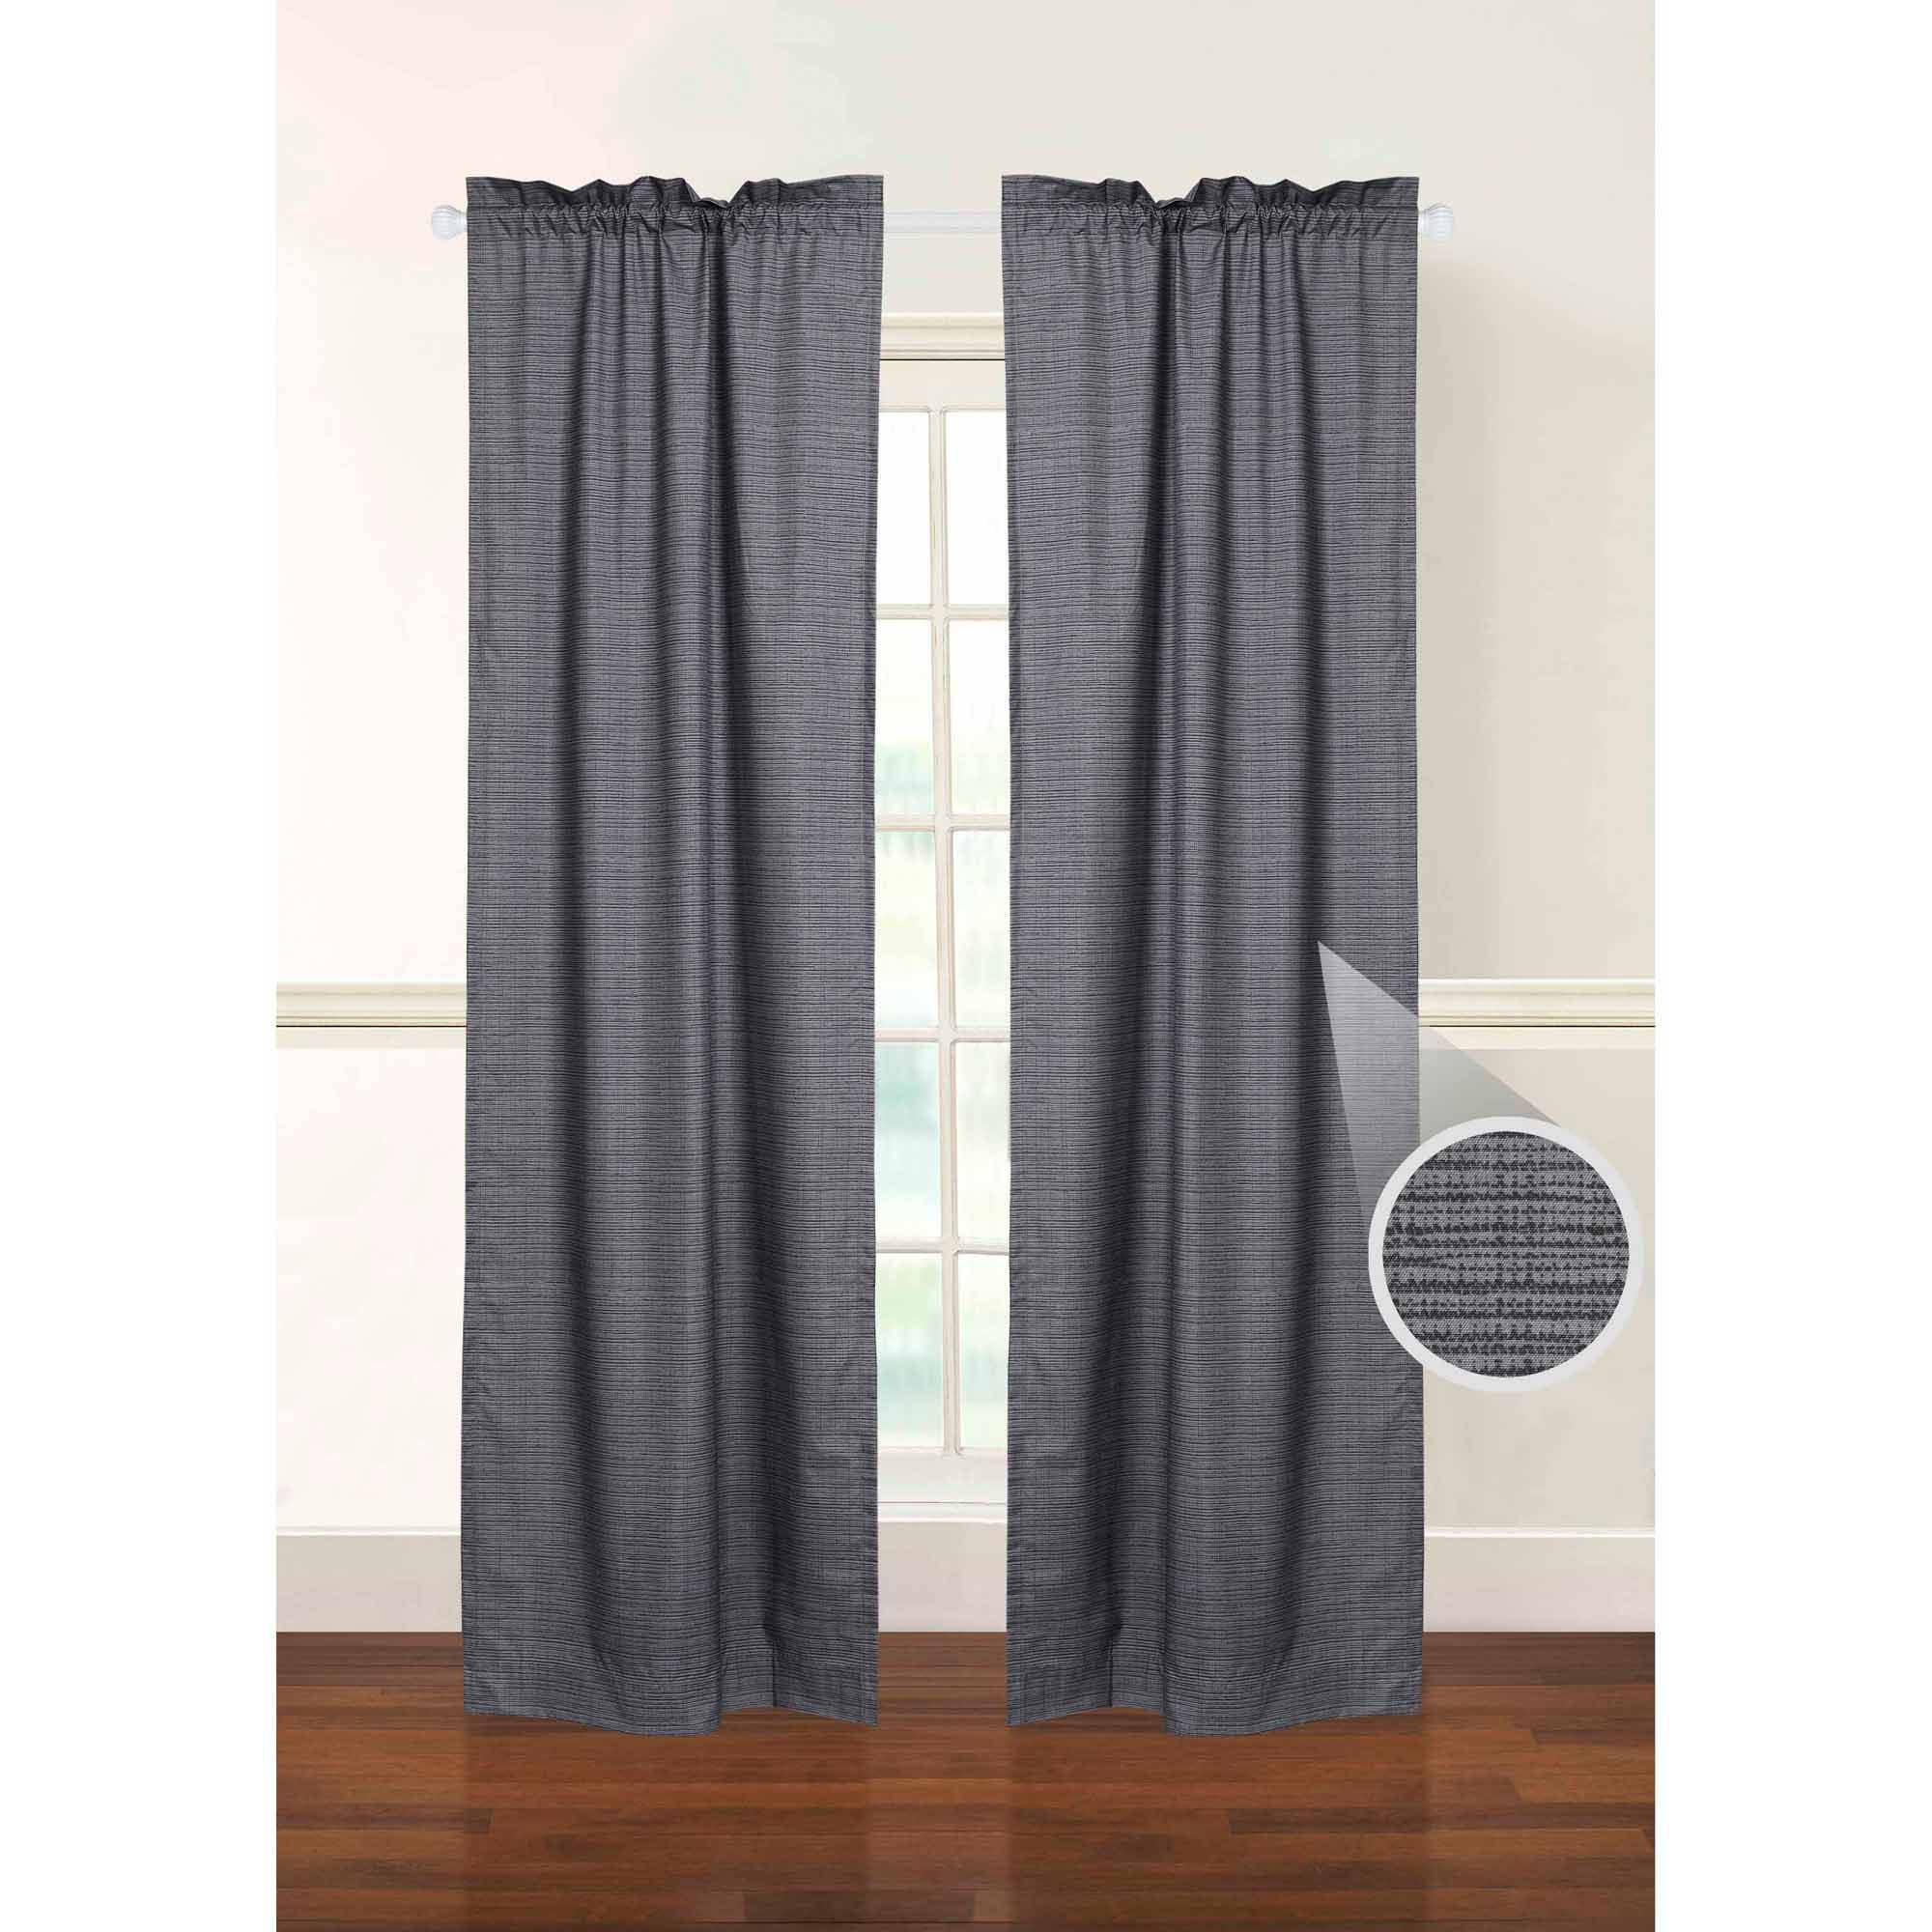 Walmart Insulated Curtains 28 Images Eclipse Blackout Thermaliner Curtain Panels Set Of 2